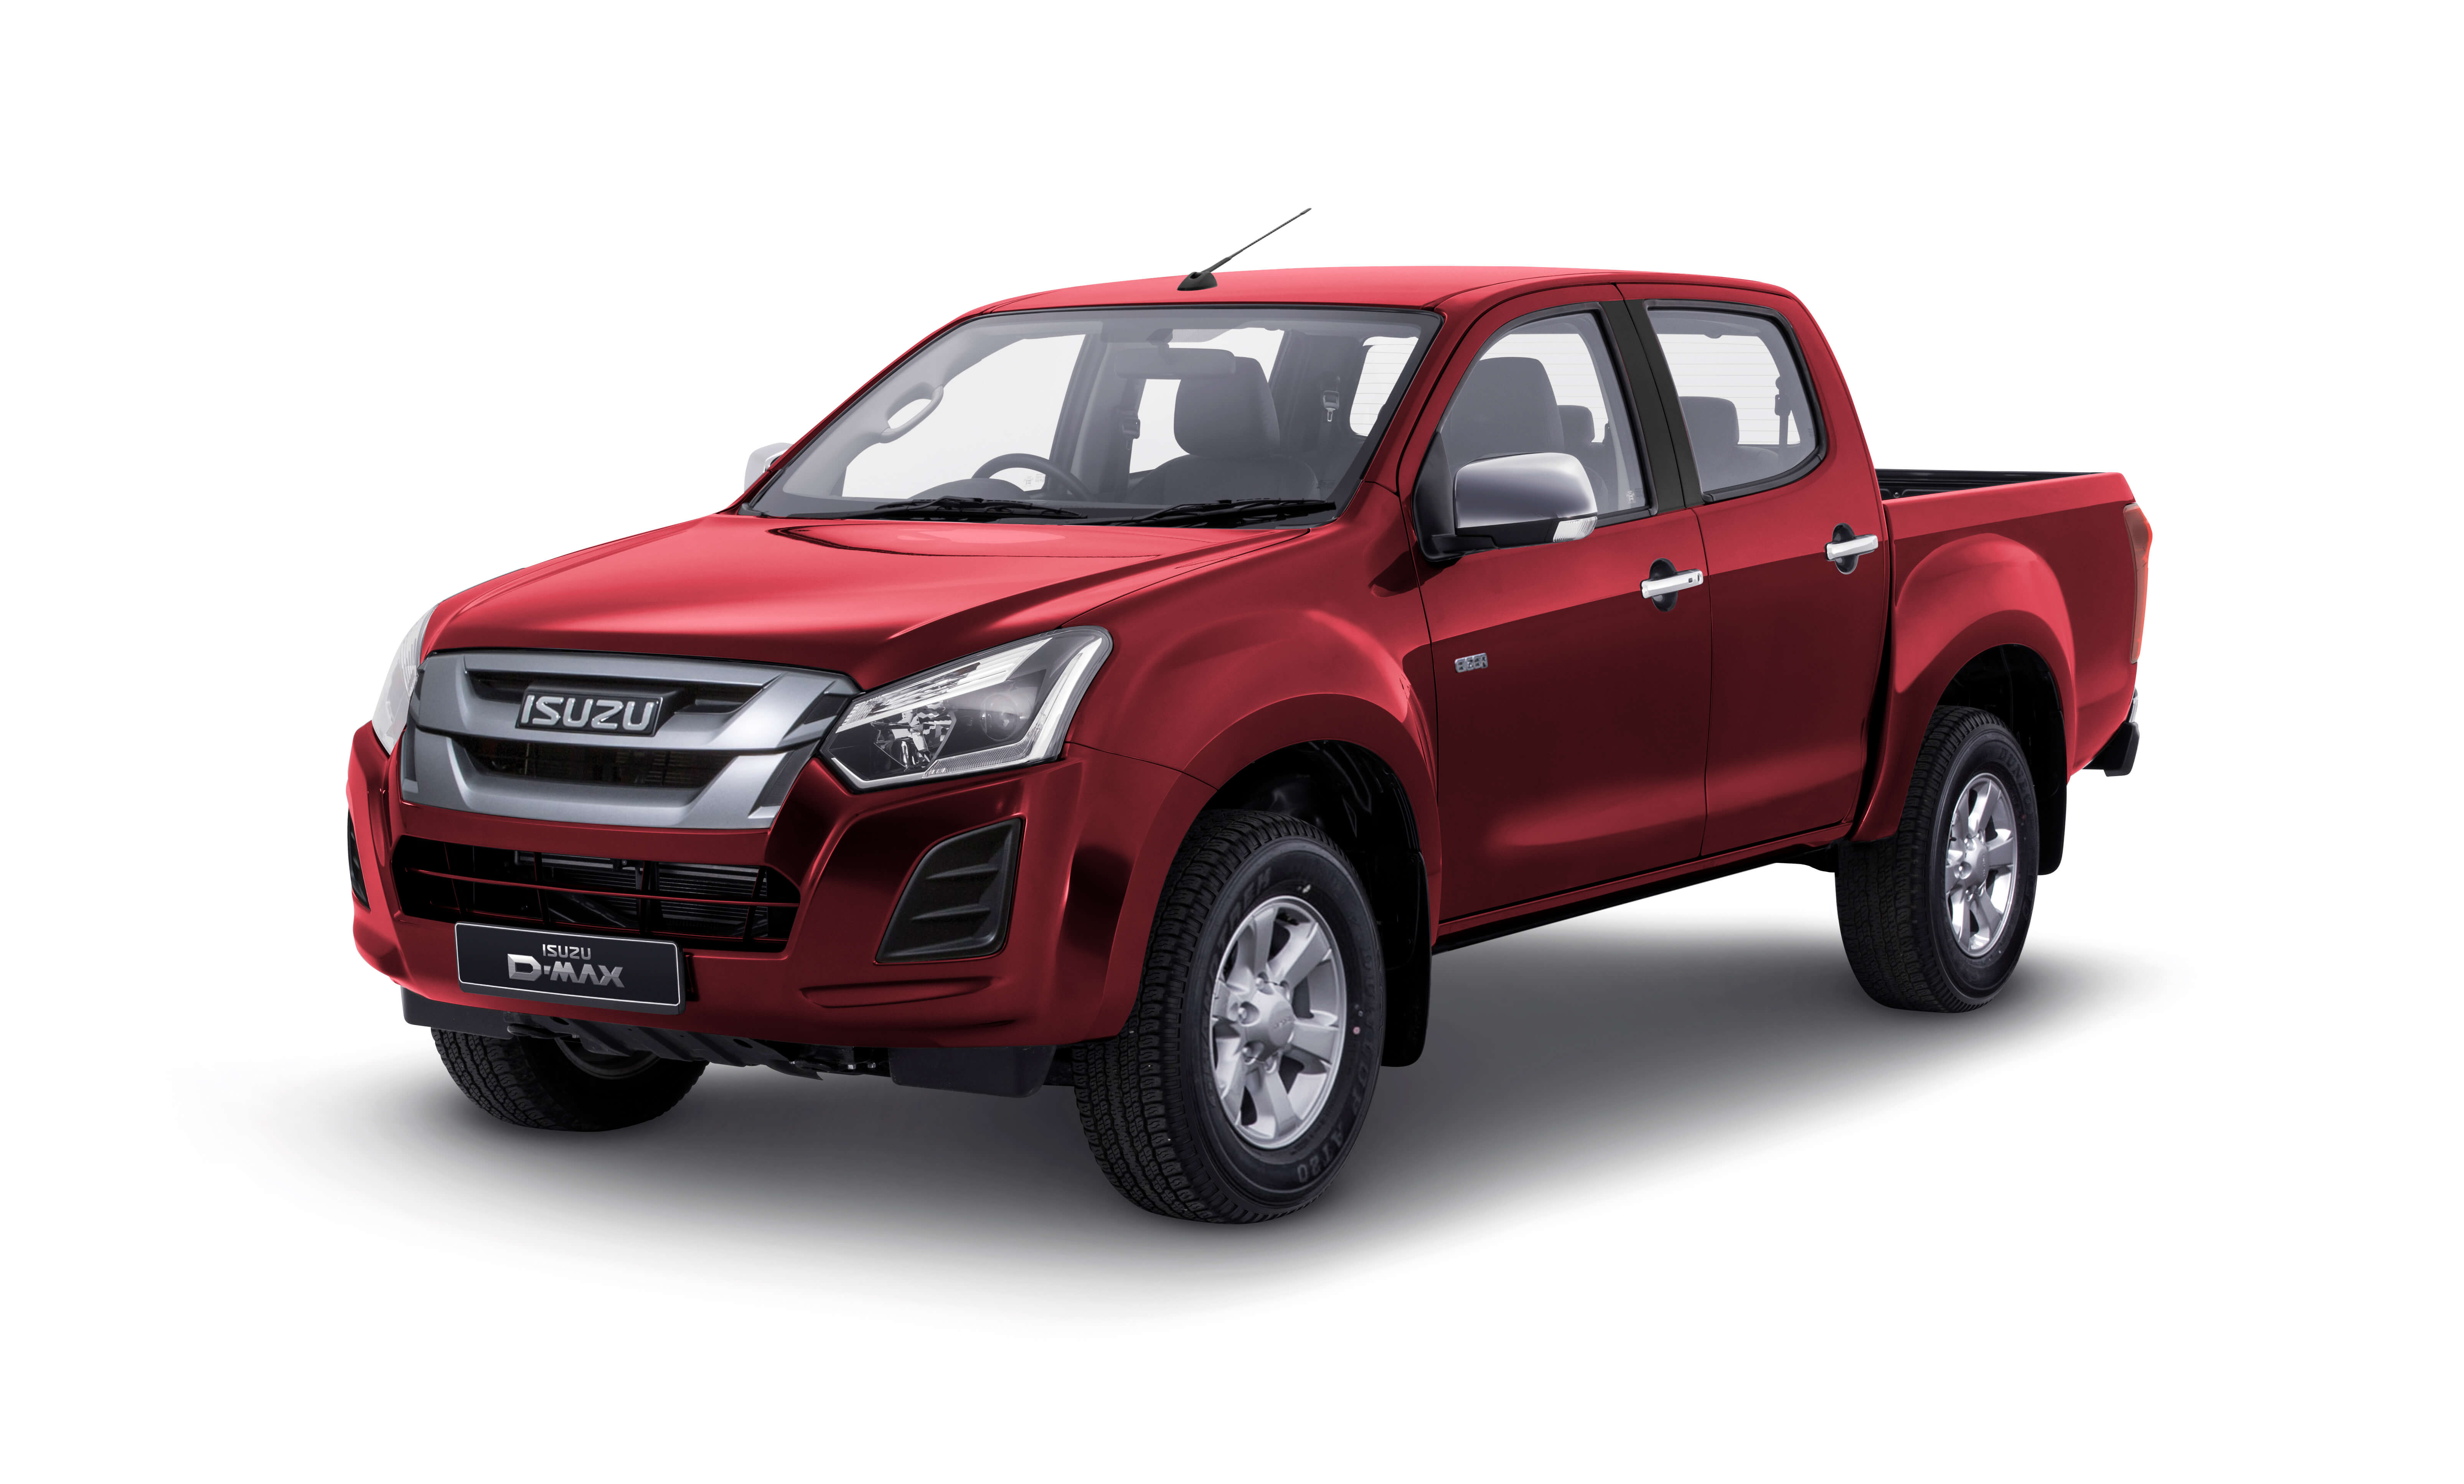 Isuzu D-Max Eiger rear view in red